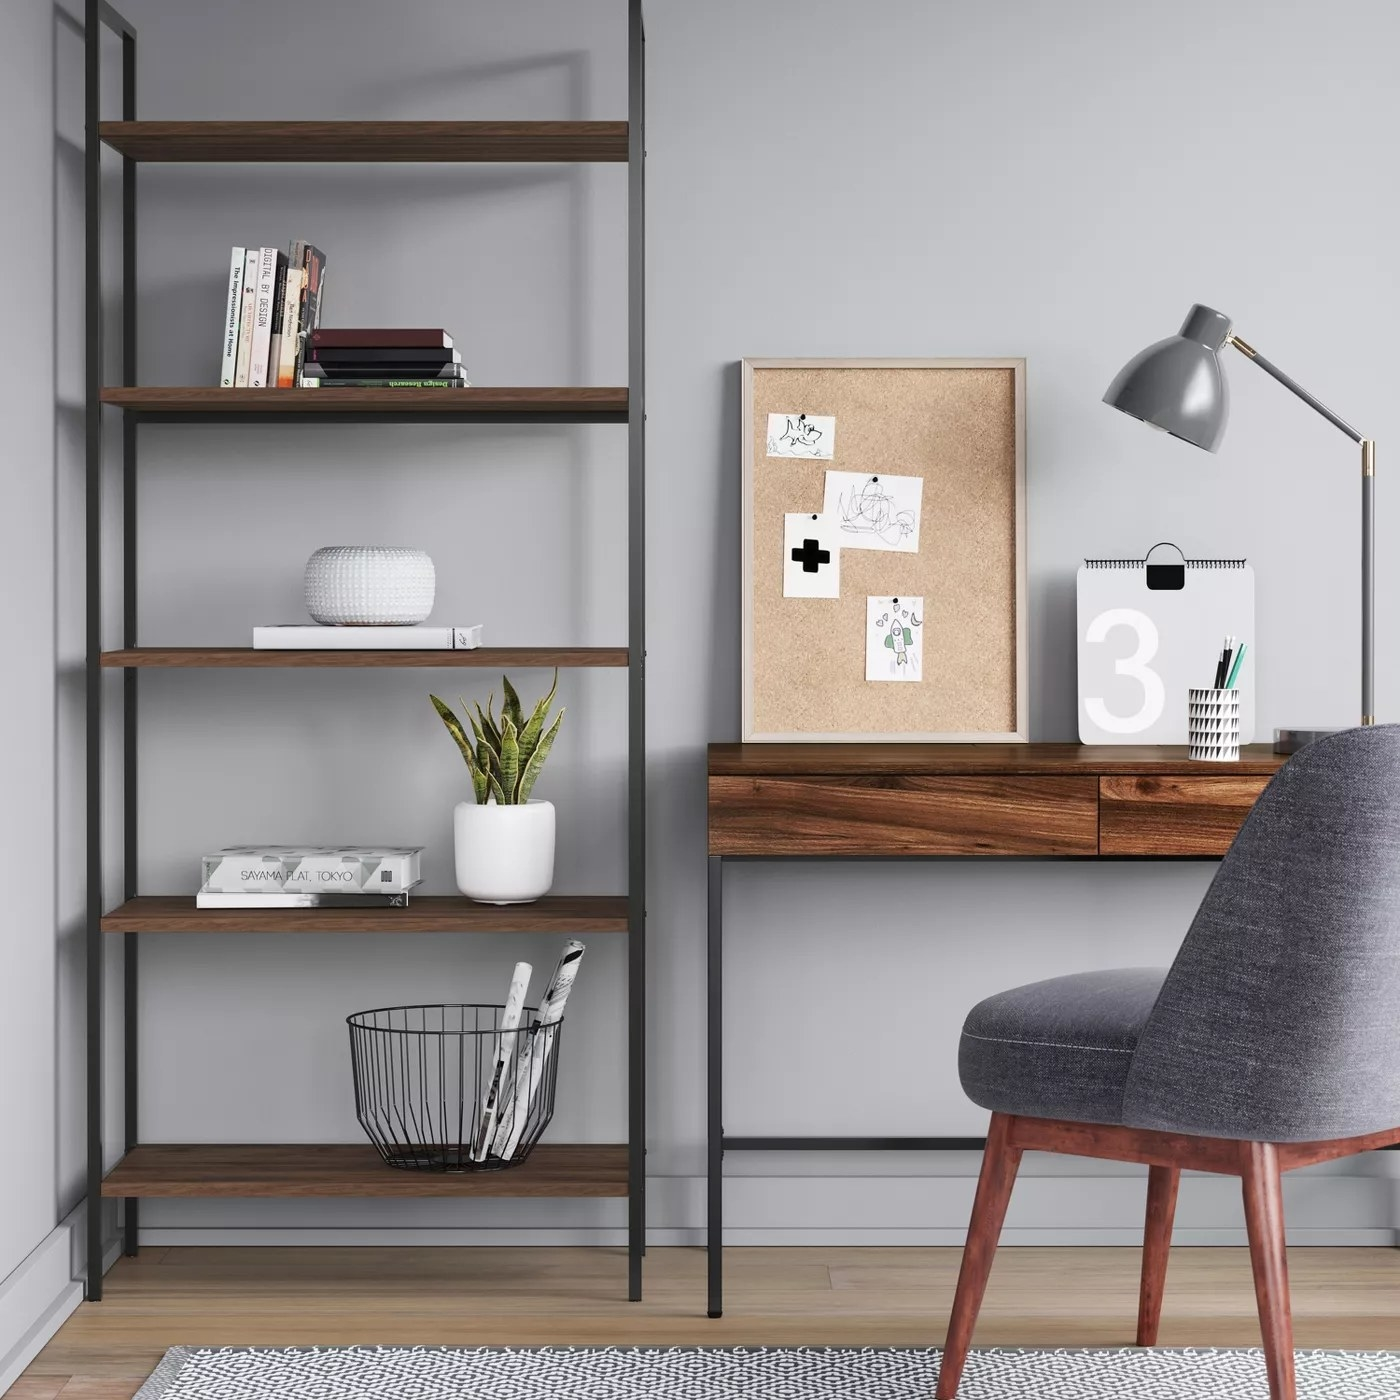 The bookshelf with five shelves in a home office